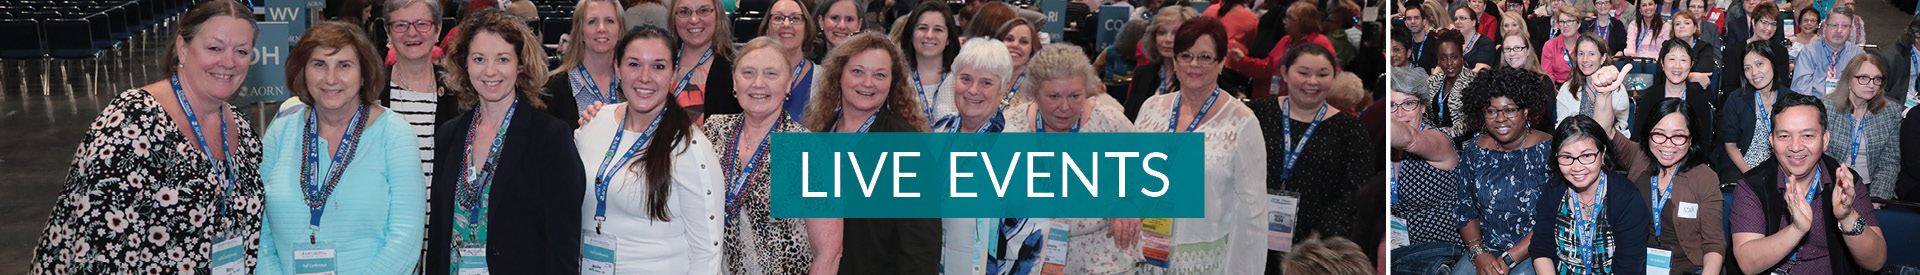 AORN Live Events